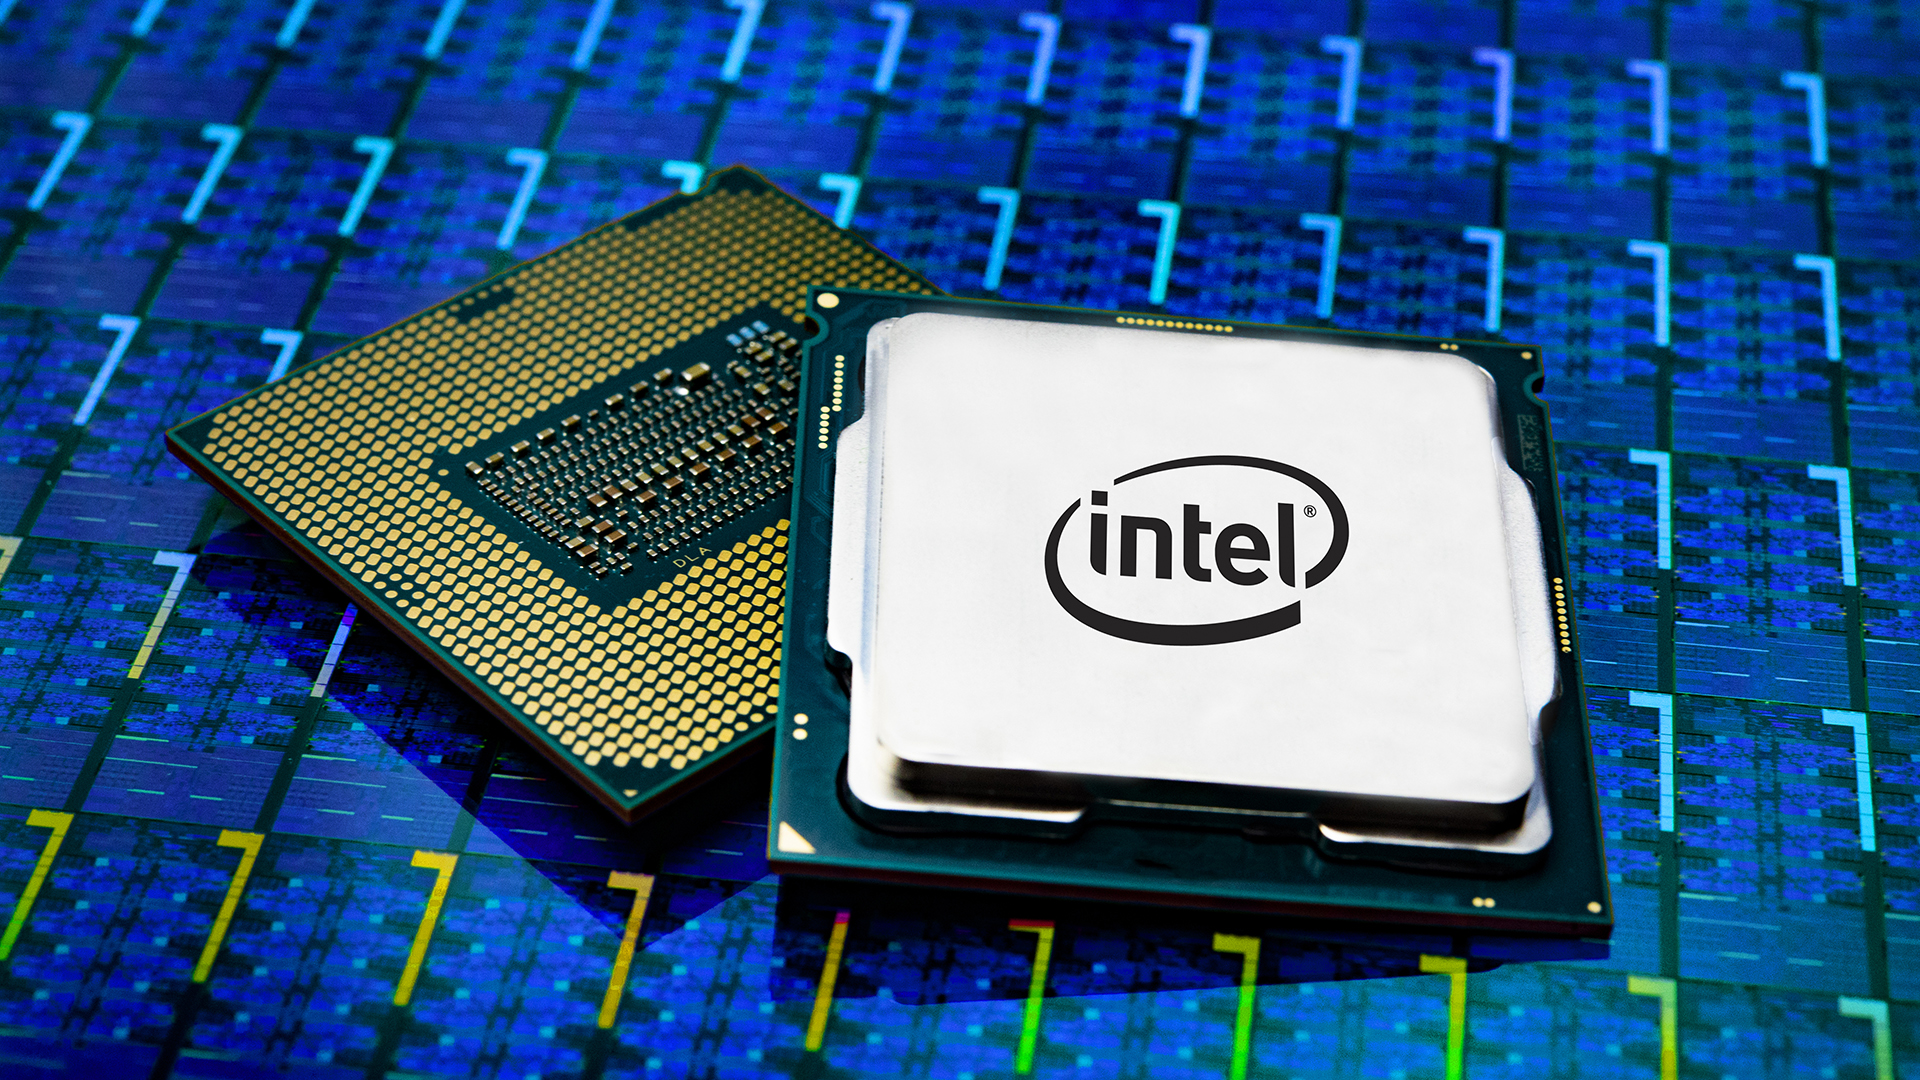 Leaks show Intel Coffee Lake Refresh CPUs have T-Series models incoming